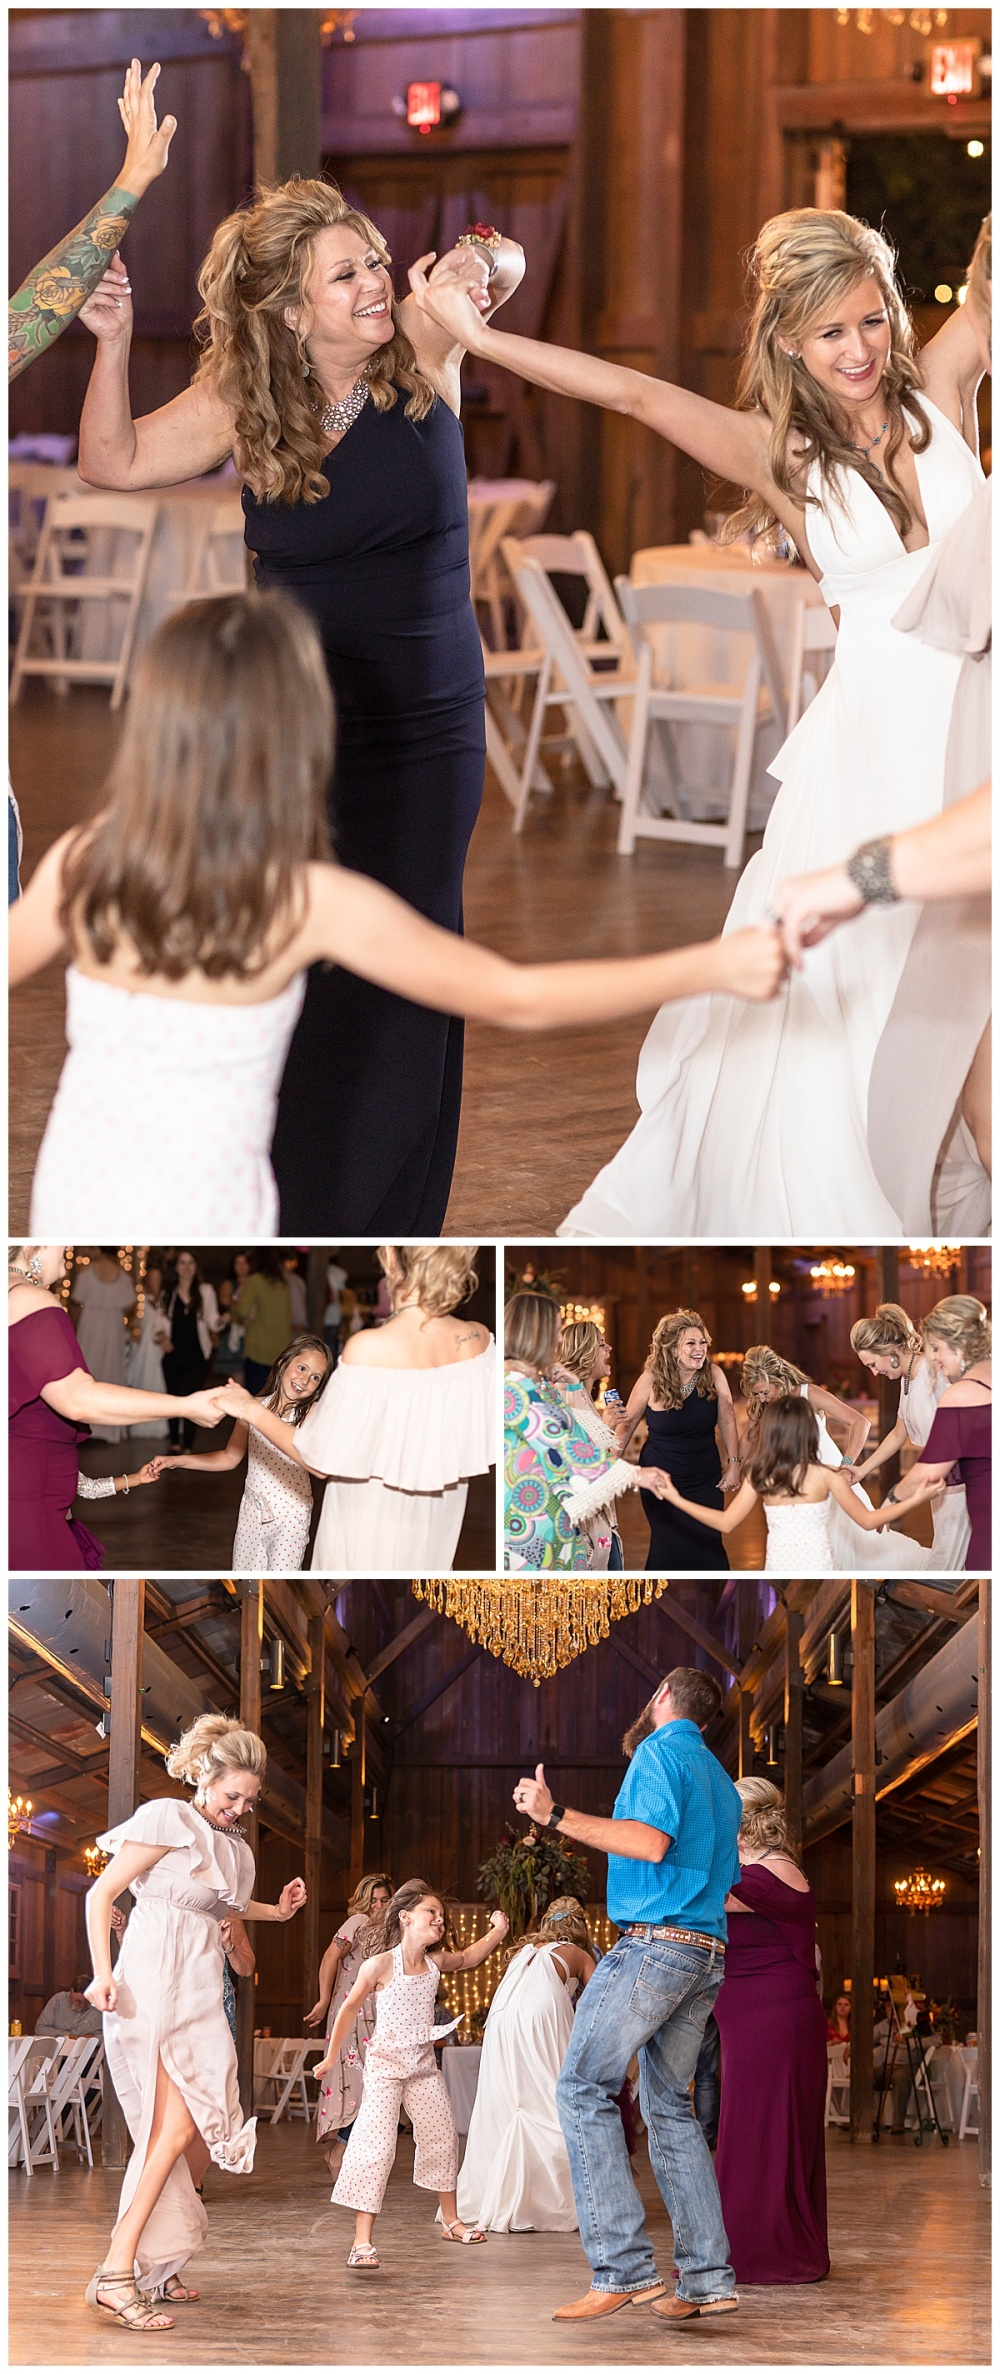 Eagle-Dancer-Ranch-Boerne-Texas-Wedding-Party-Barn-Carly-Barton-Photography_0073.jpg